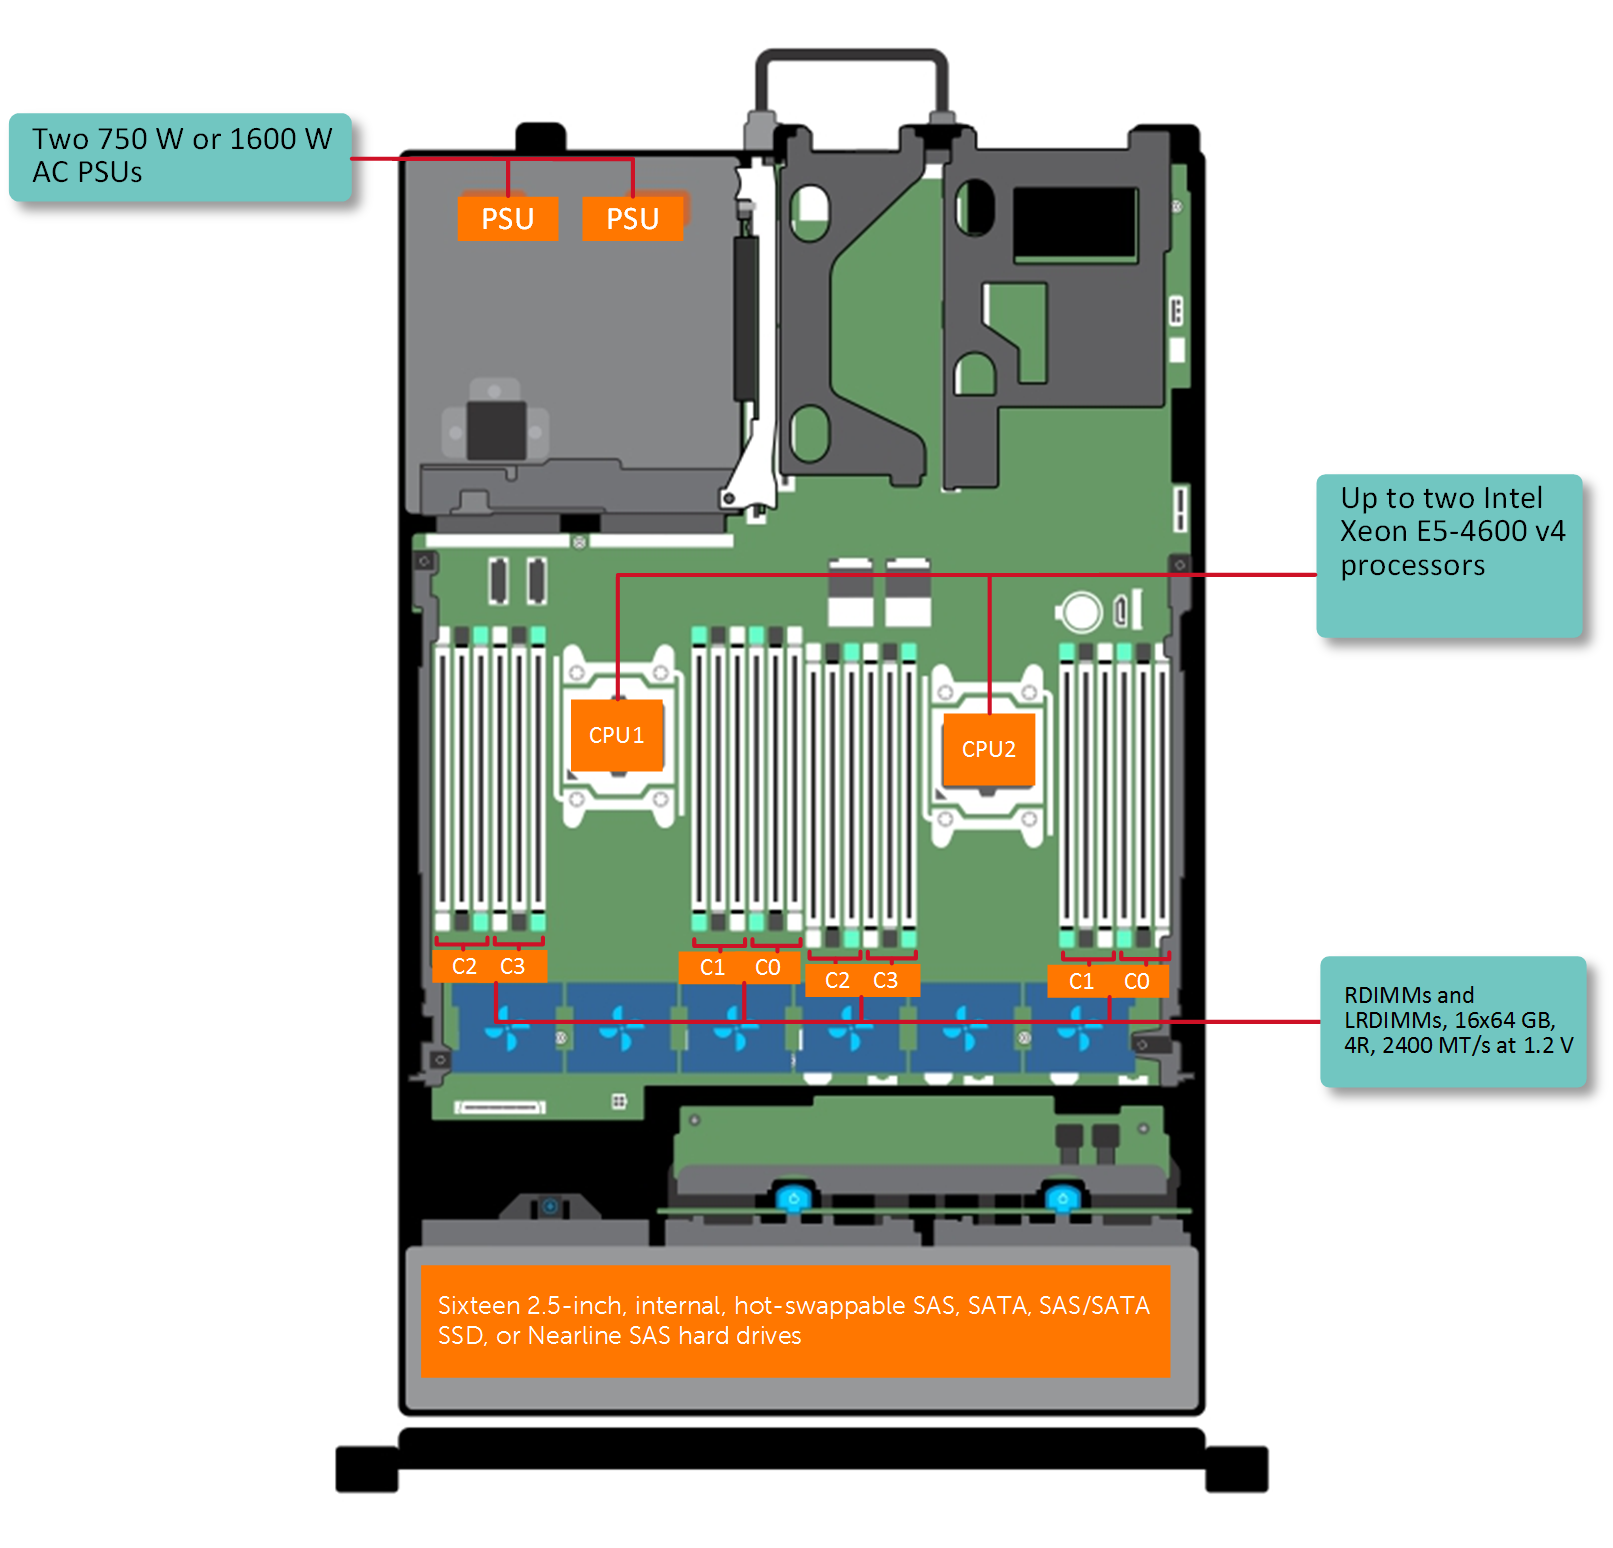 Dell Xps 8300 Wiring Diagram further I7 Block Diagram also Dell M1330 Motherboard Schematic in addition Dell Dimension 2400 Diagram besides Techov1. on dell dimension 2400 wiring diagram